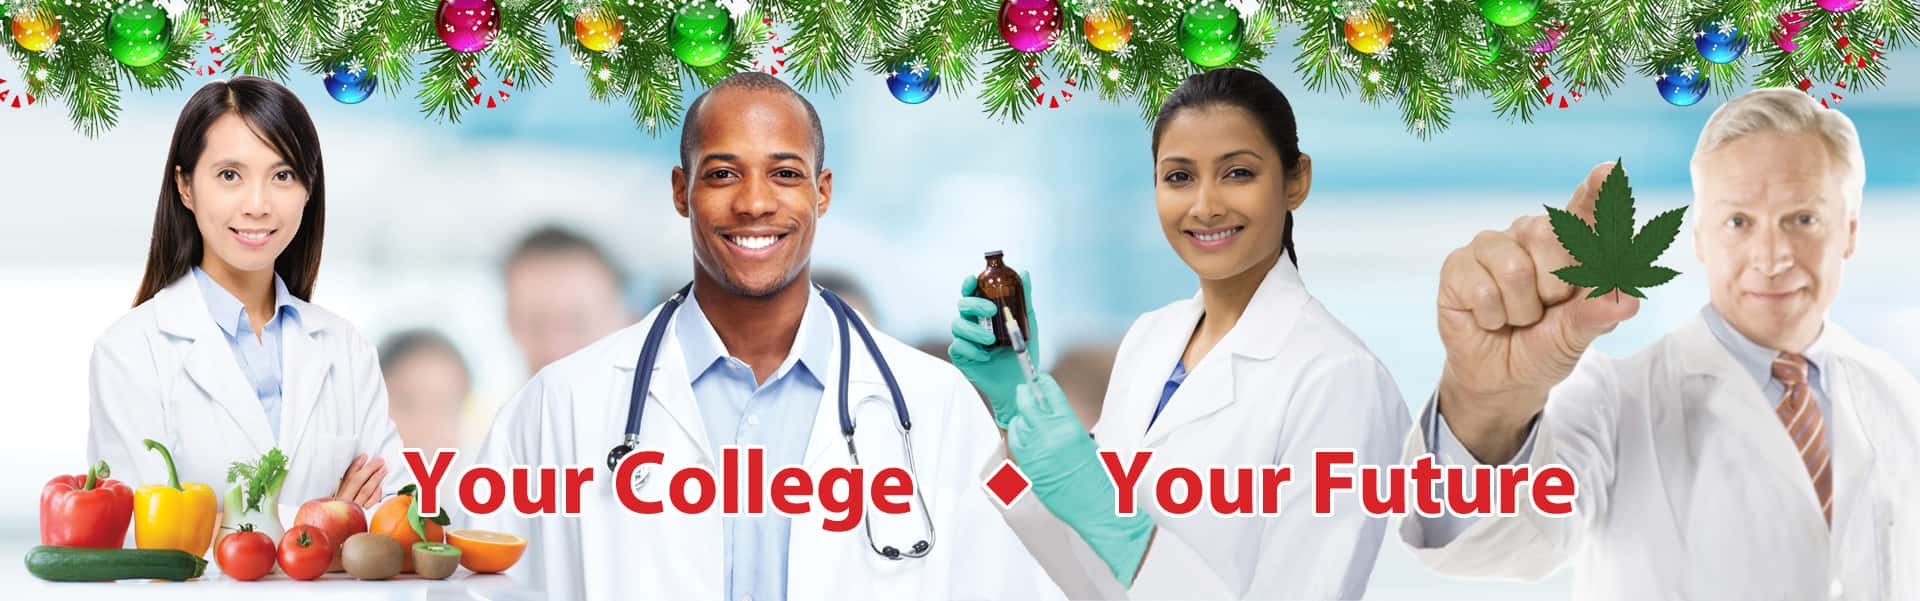 Your-college-clinical-main-christmas 1